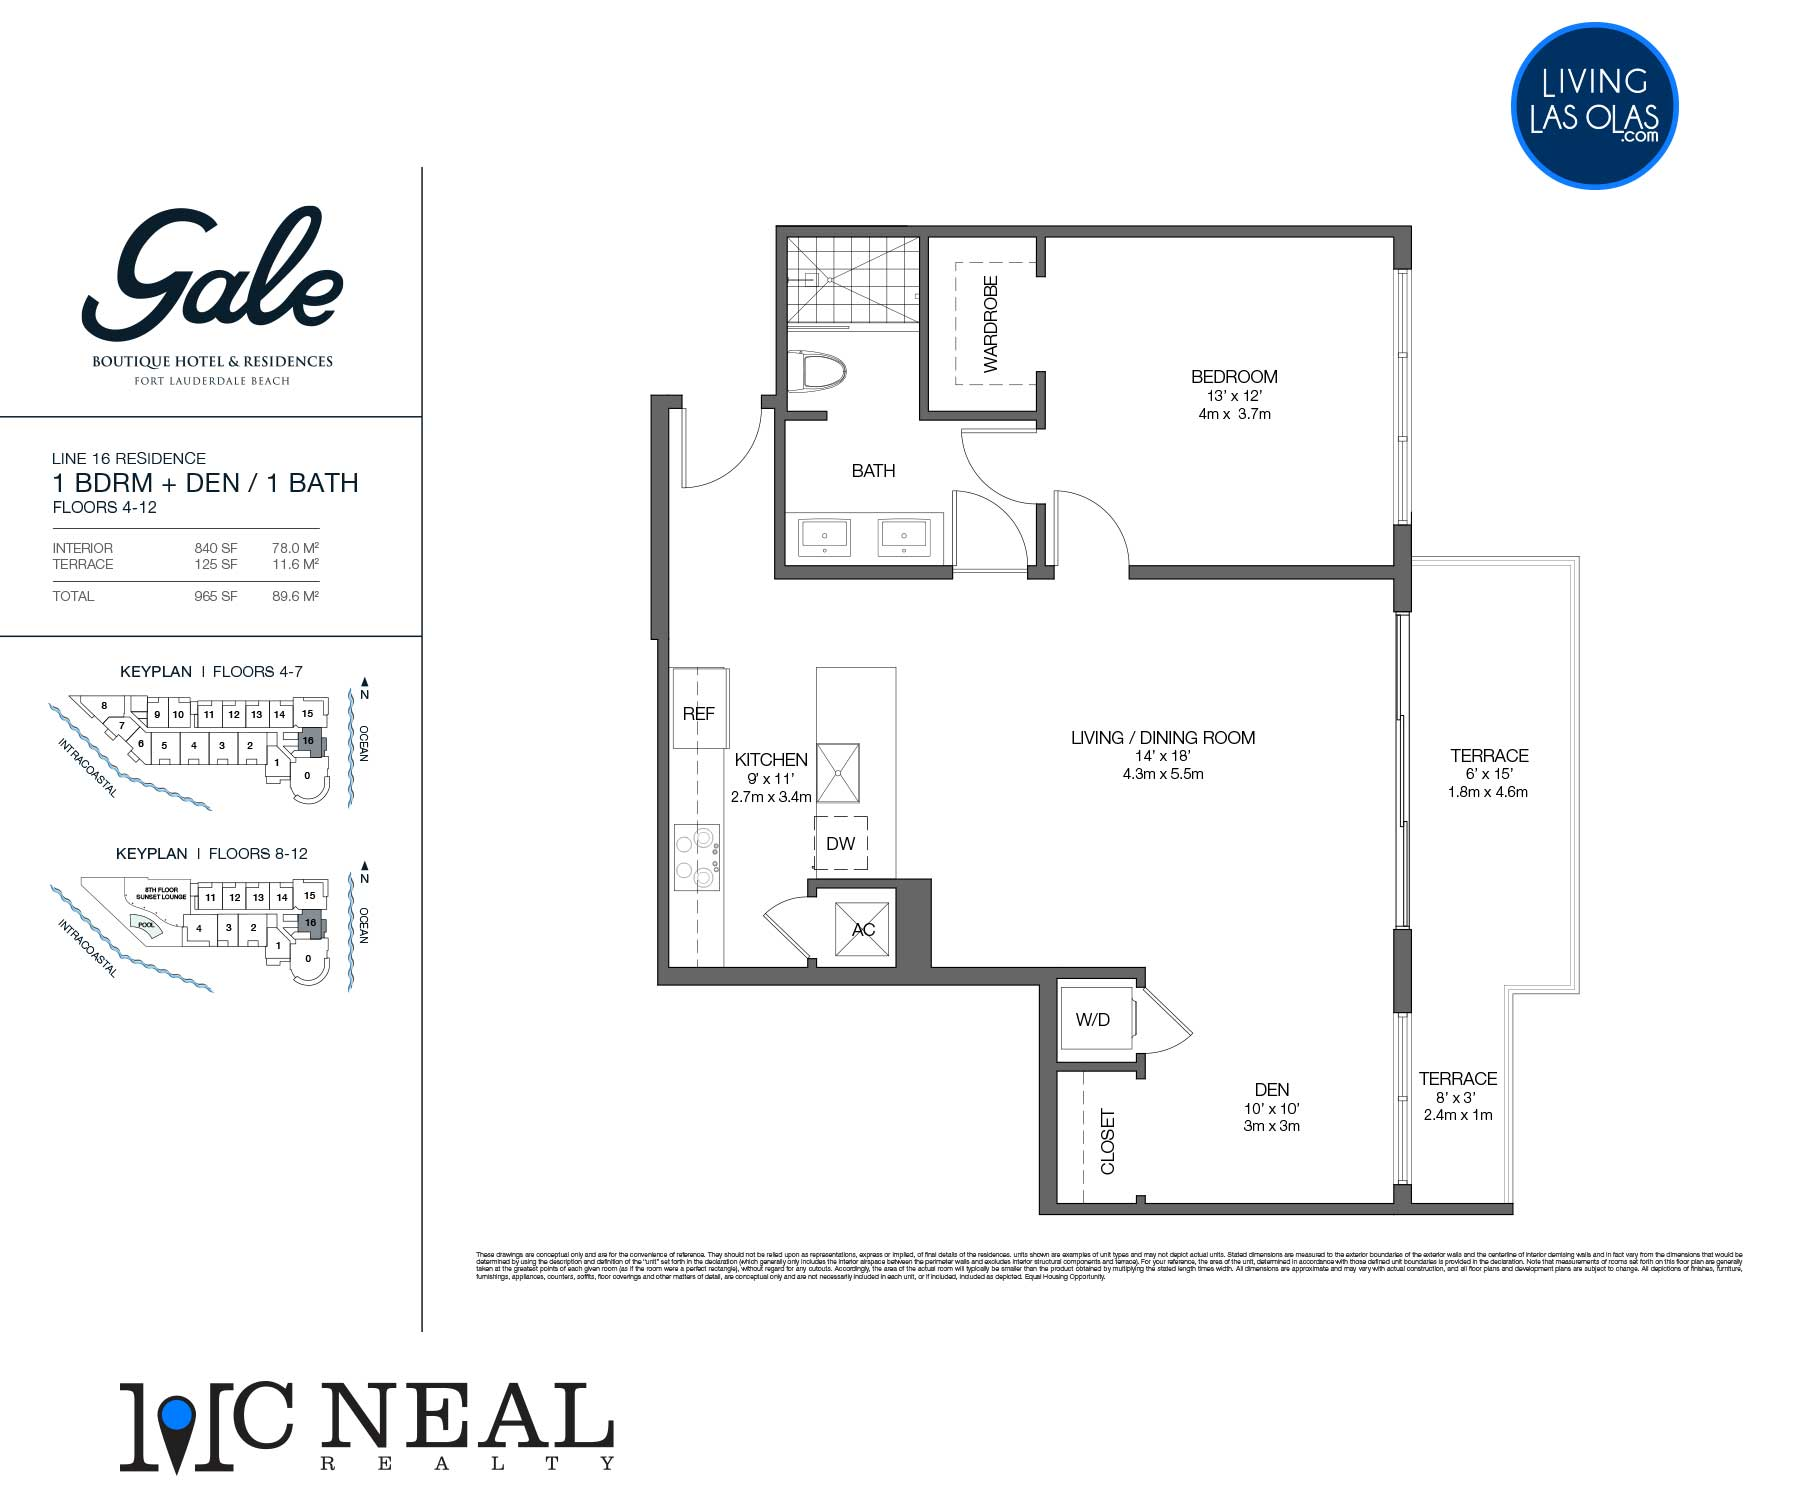 Tiffany House Condos Floor Plans Line16